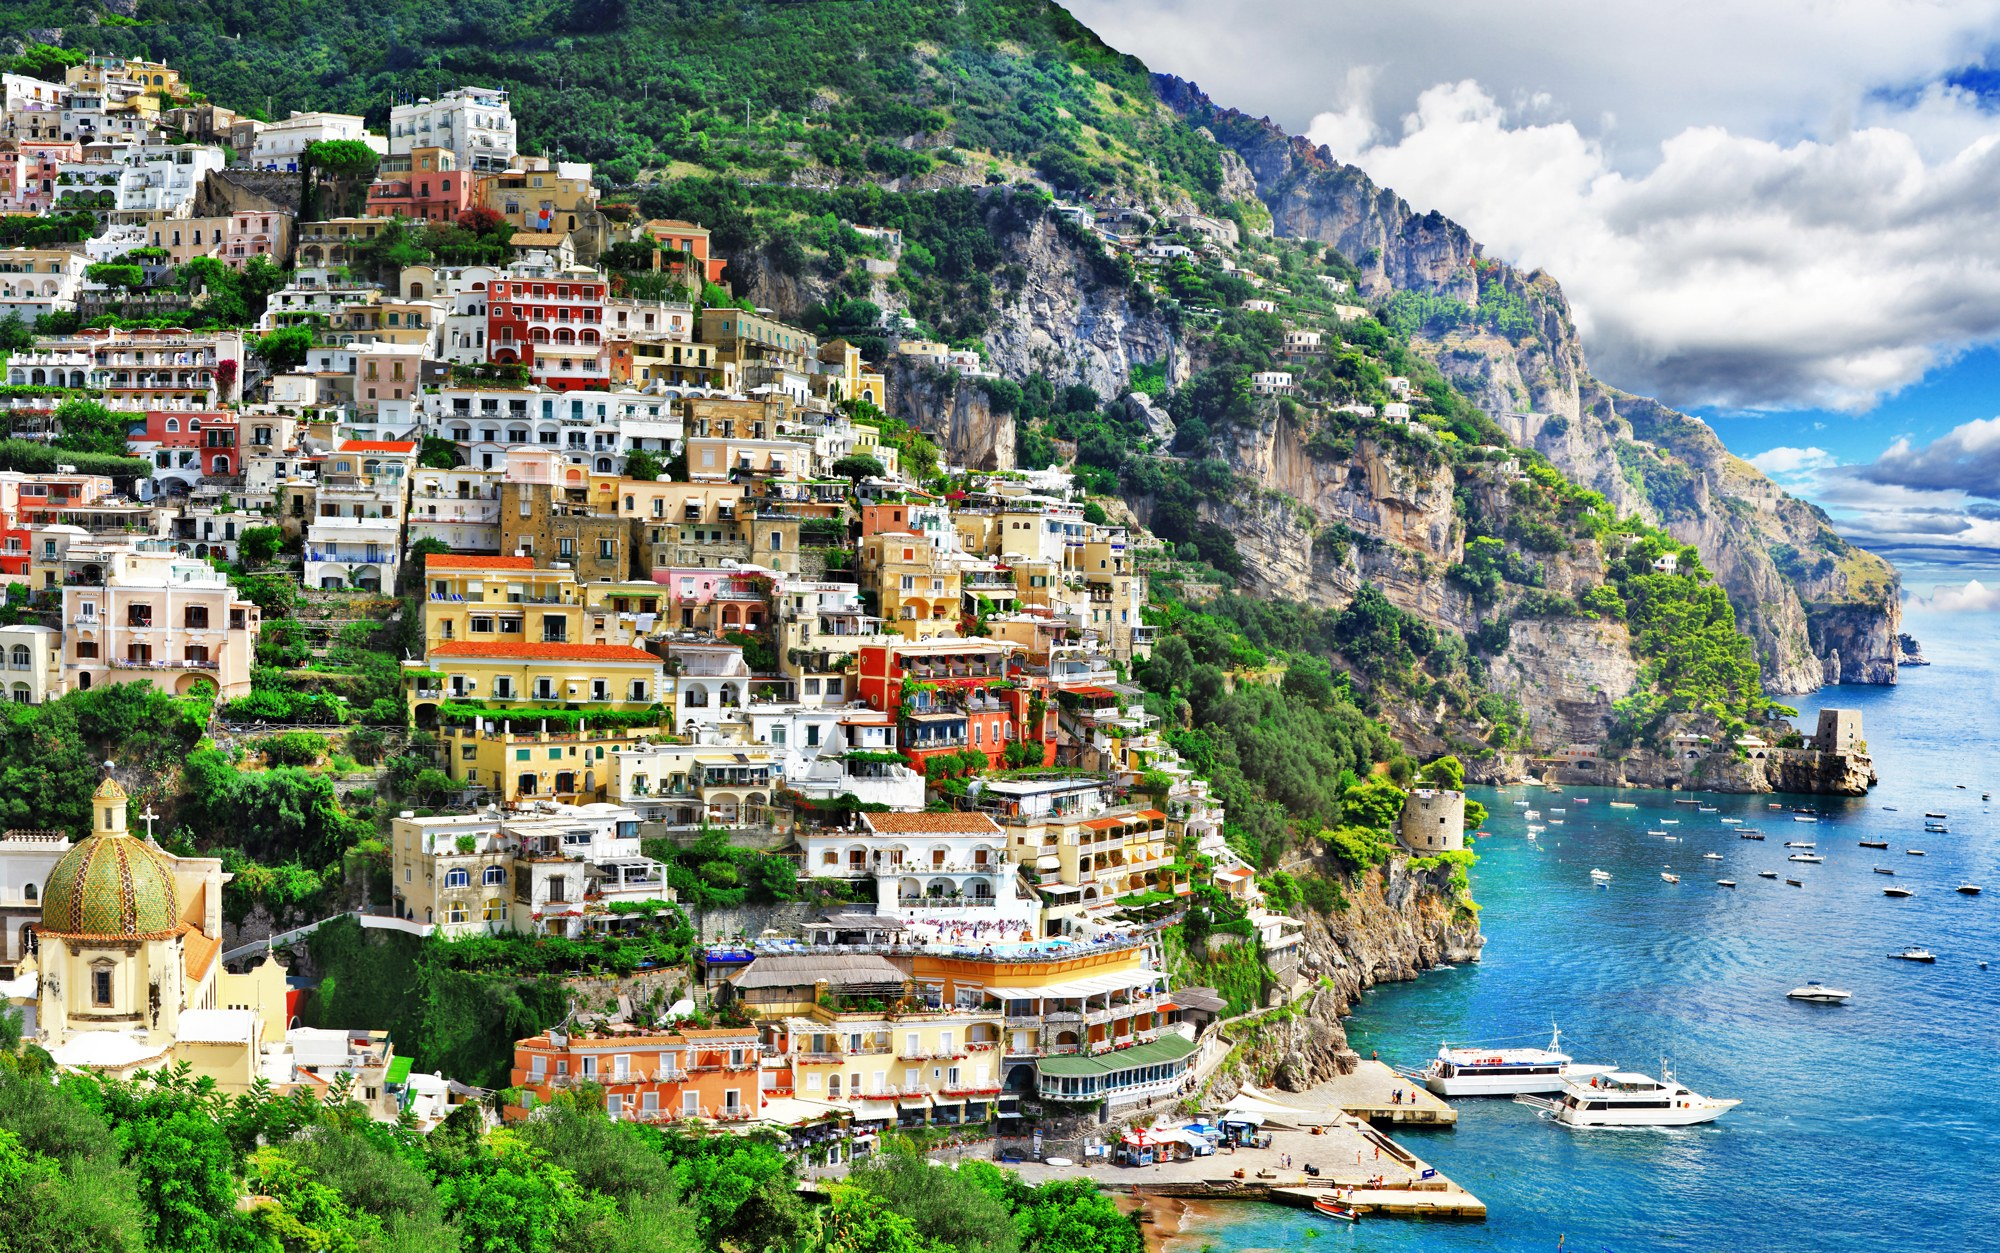 Italian Tourist: Amalfi Coast Travel Guide For First-time Visitors